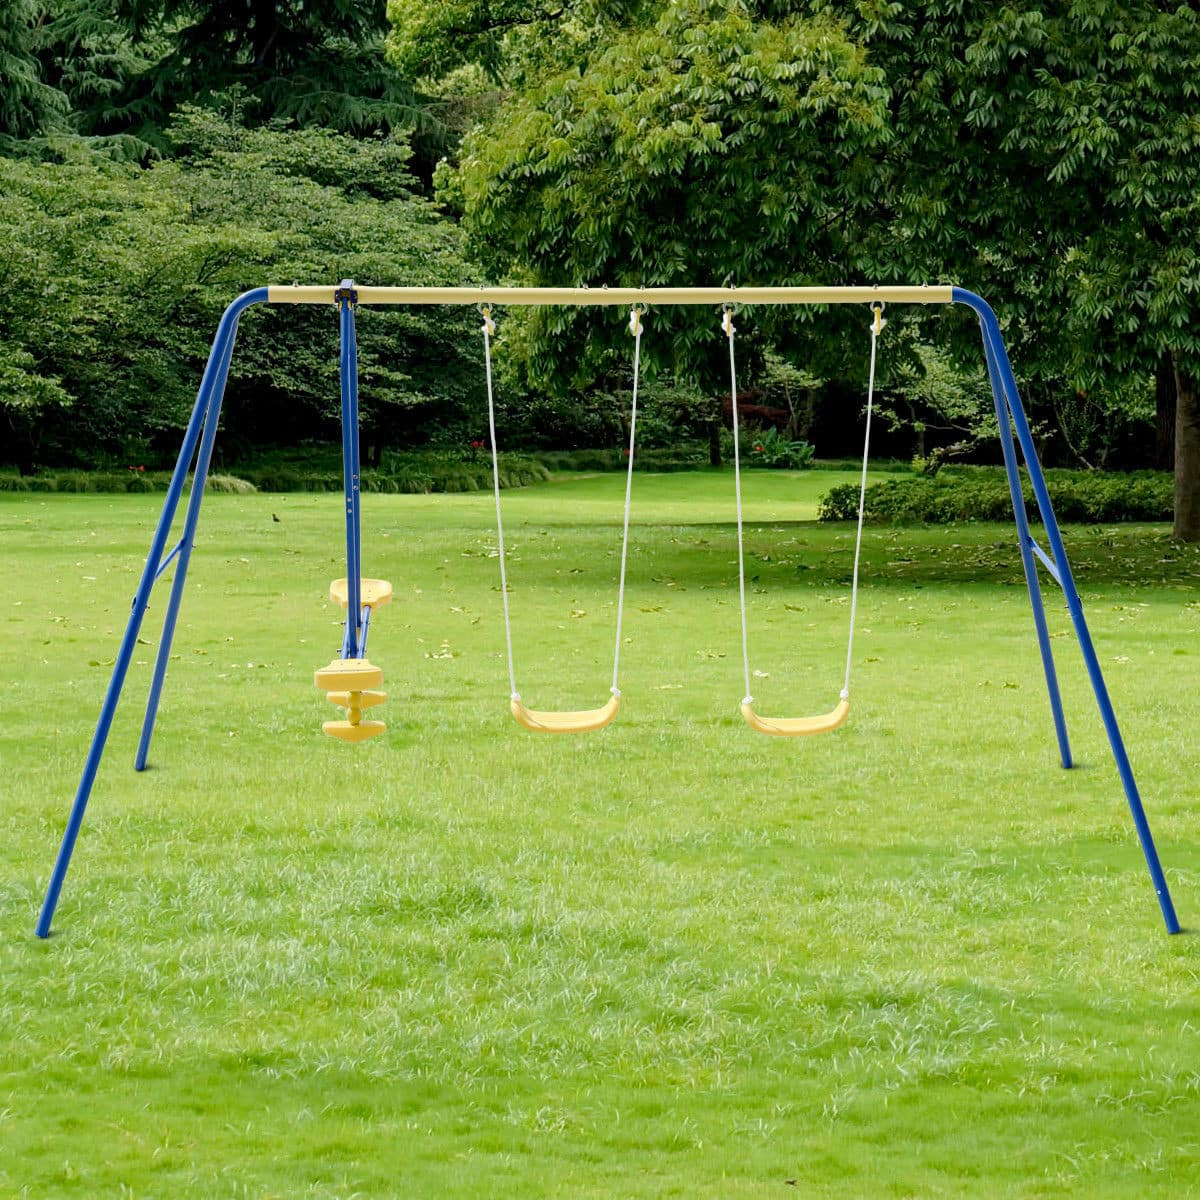 Costway Metal A-Frame Four Seat Swing Set for 4 Children for $90.95 + Free Shipping